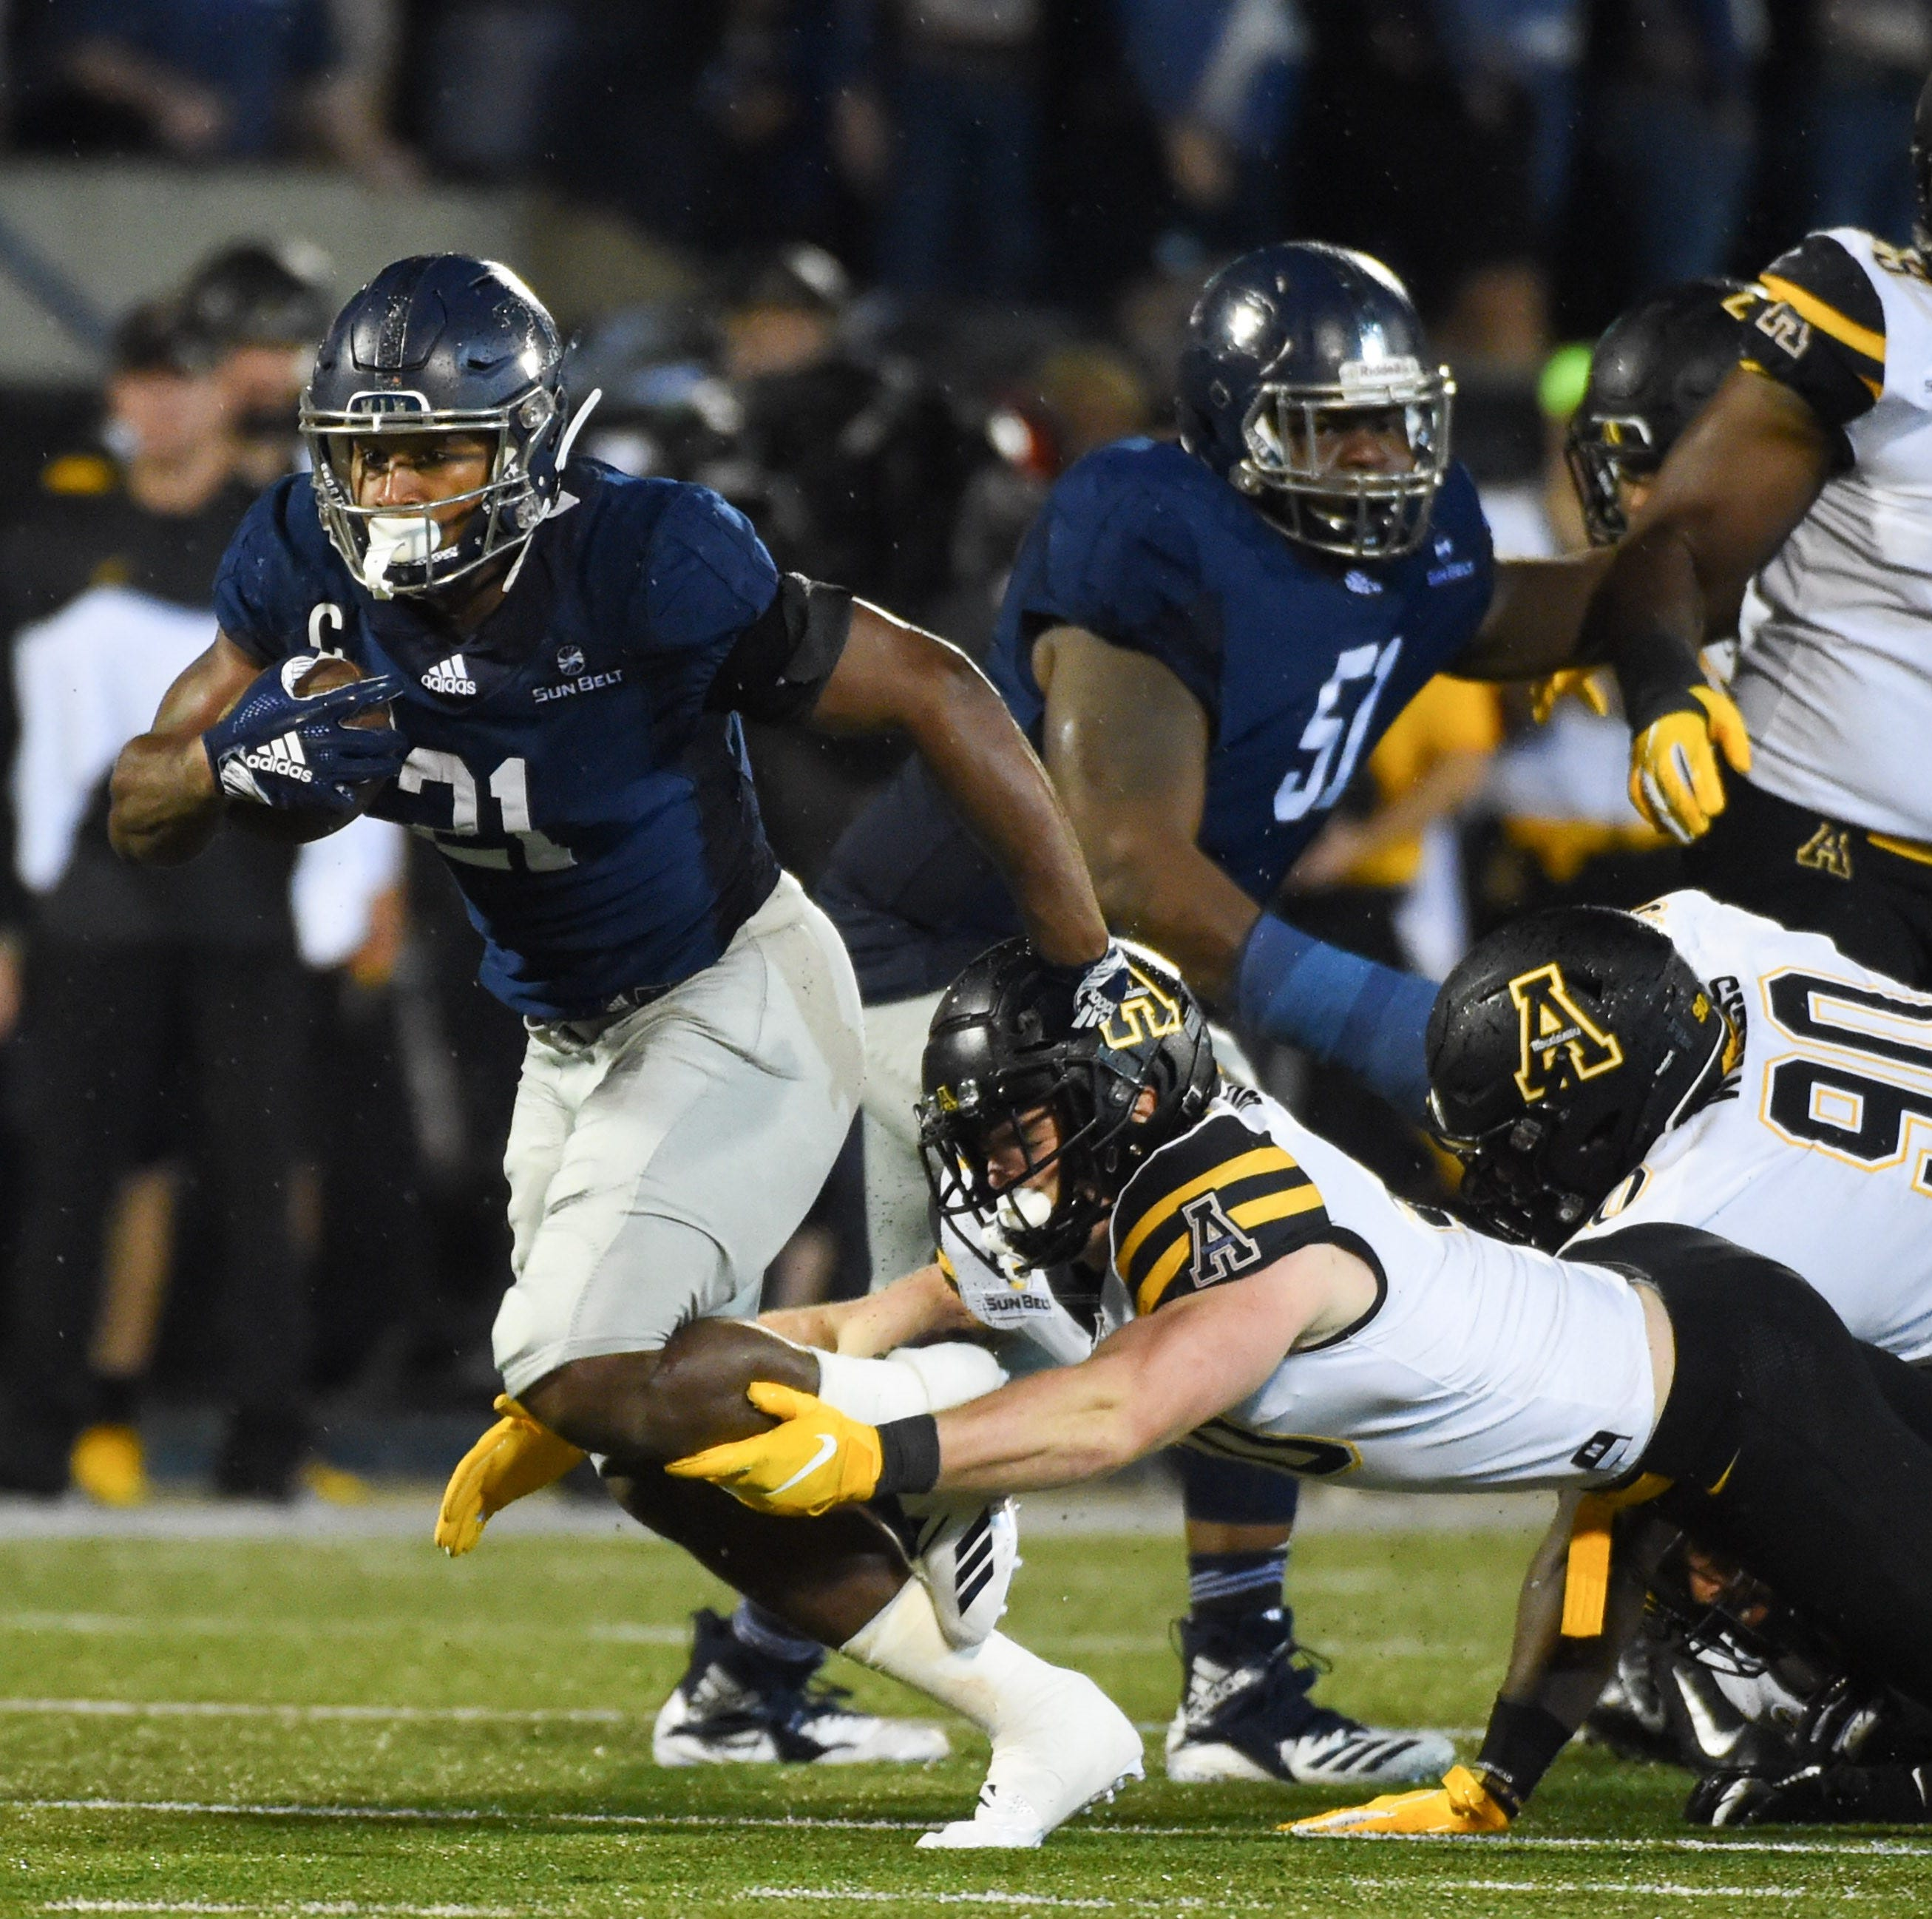 Oct 25, 2018; Statesboro, GA, USA; Georgia Southern Eagles running back Wesley Fields (21) carries the ball against Appalachian State Mountaineers linebacker Logan Doublin (40) during the second half at Allen E. Paulson Stadium. Mandatory Credit: Adam Hagy-USA TODAY Sports